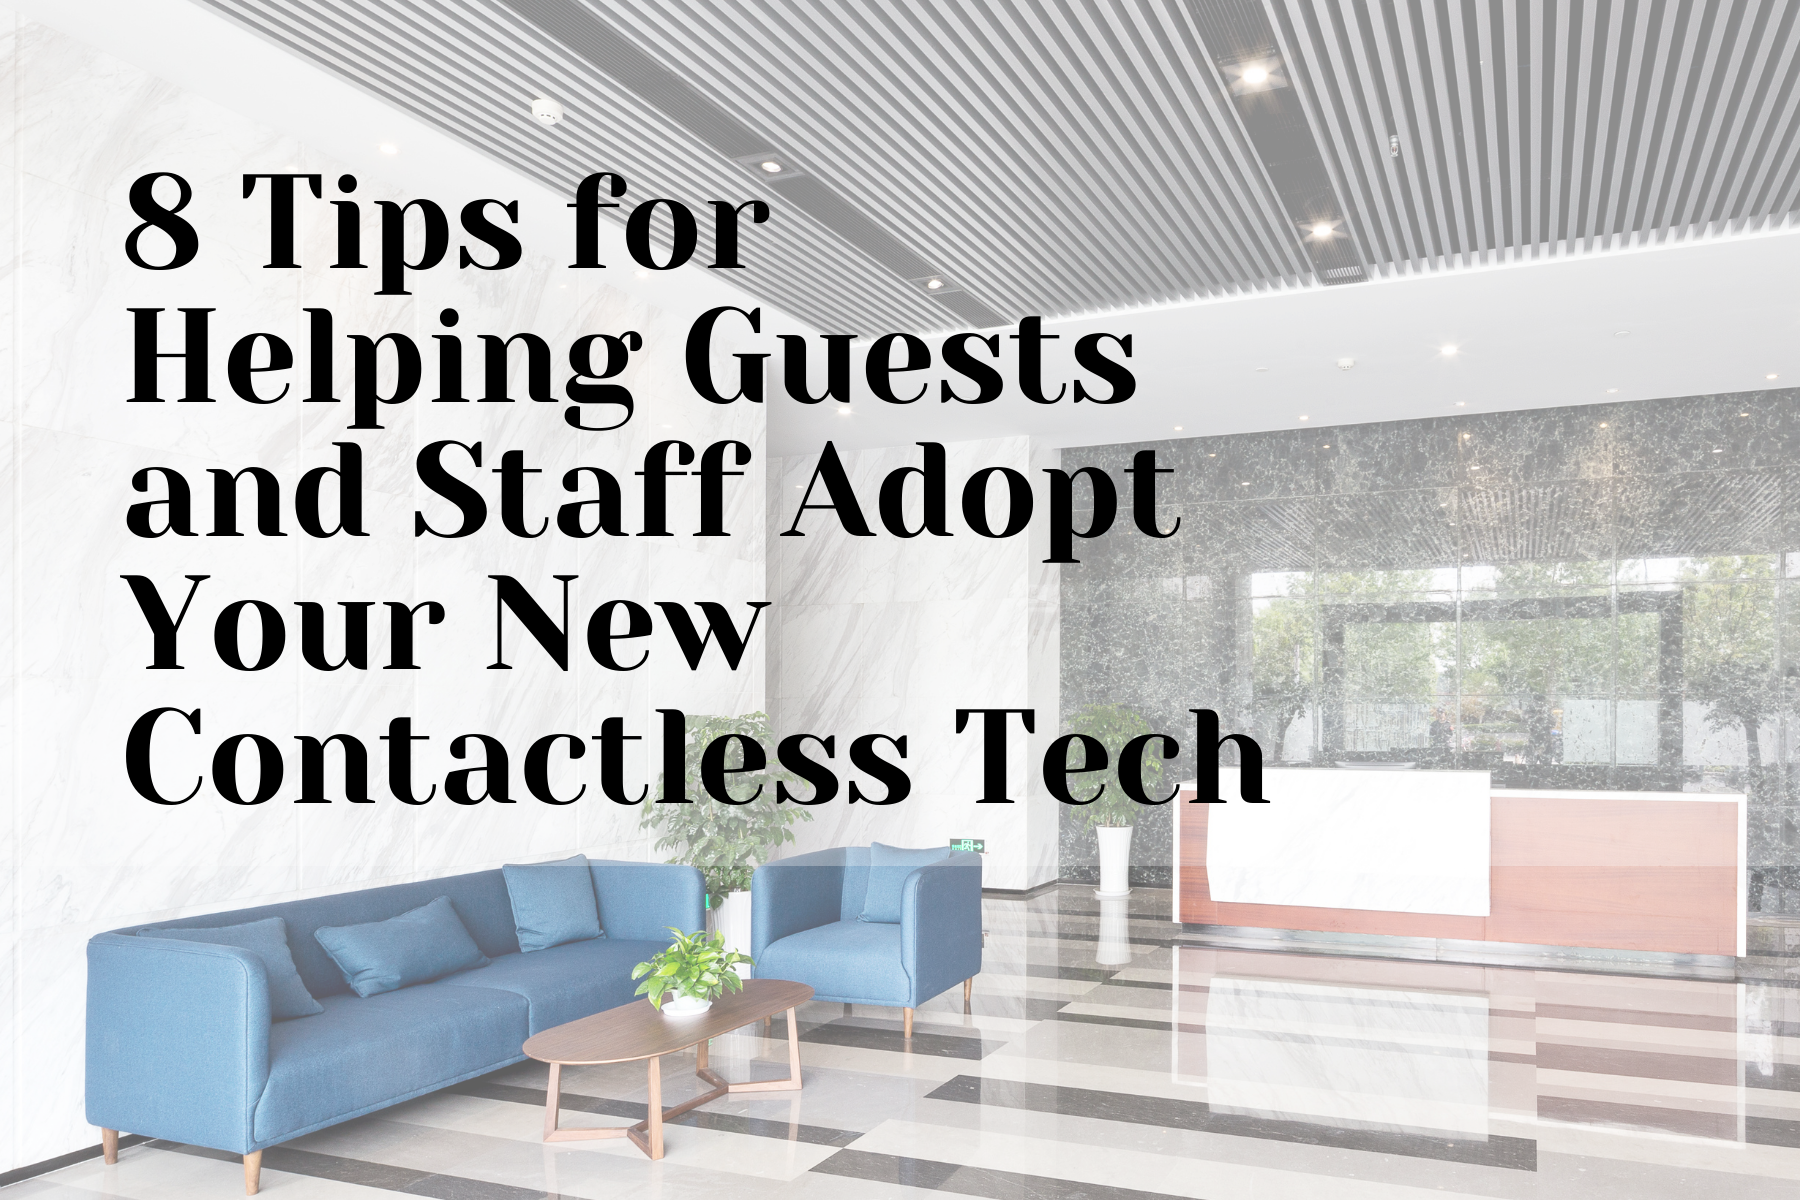 8 Tips for Helping Guests and Staff Adopt Your New Contactless Tech